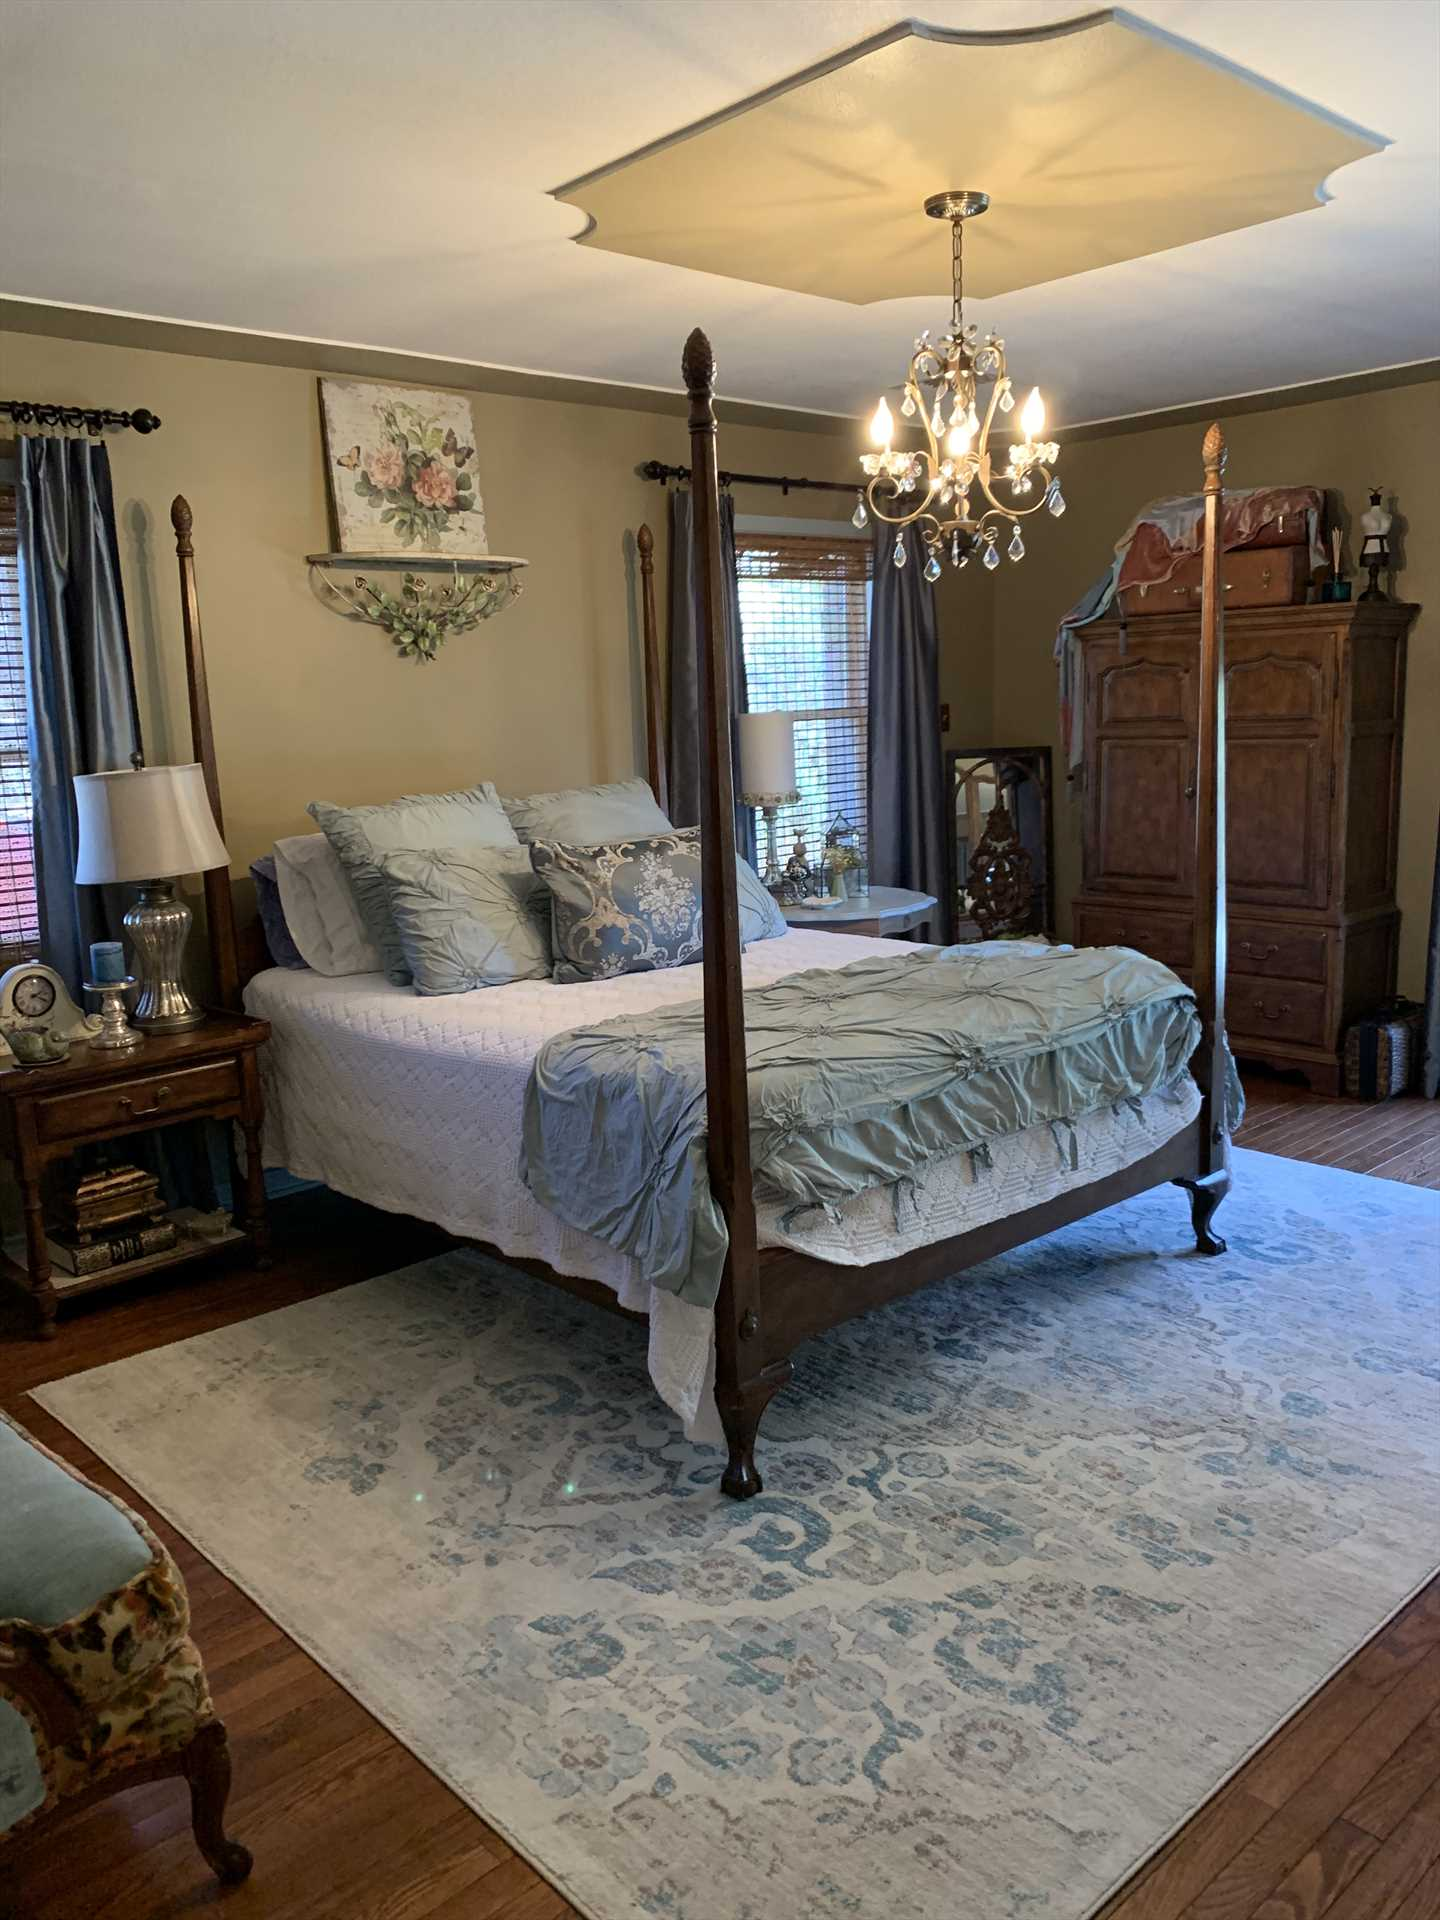 Rest like ranch royalty in the big and comfy queen-sized bed in the downstairs master bedroom! Fresh and clean linens are provided for all the beds at Water's Edge.